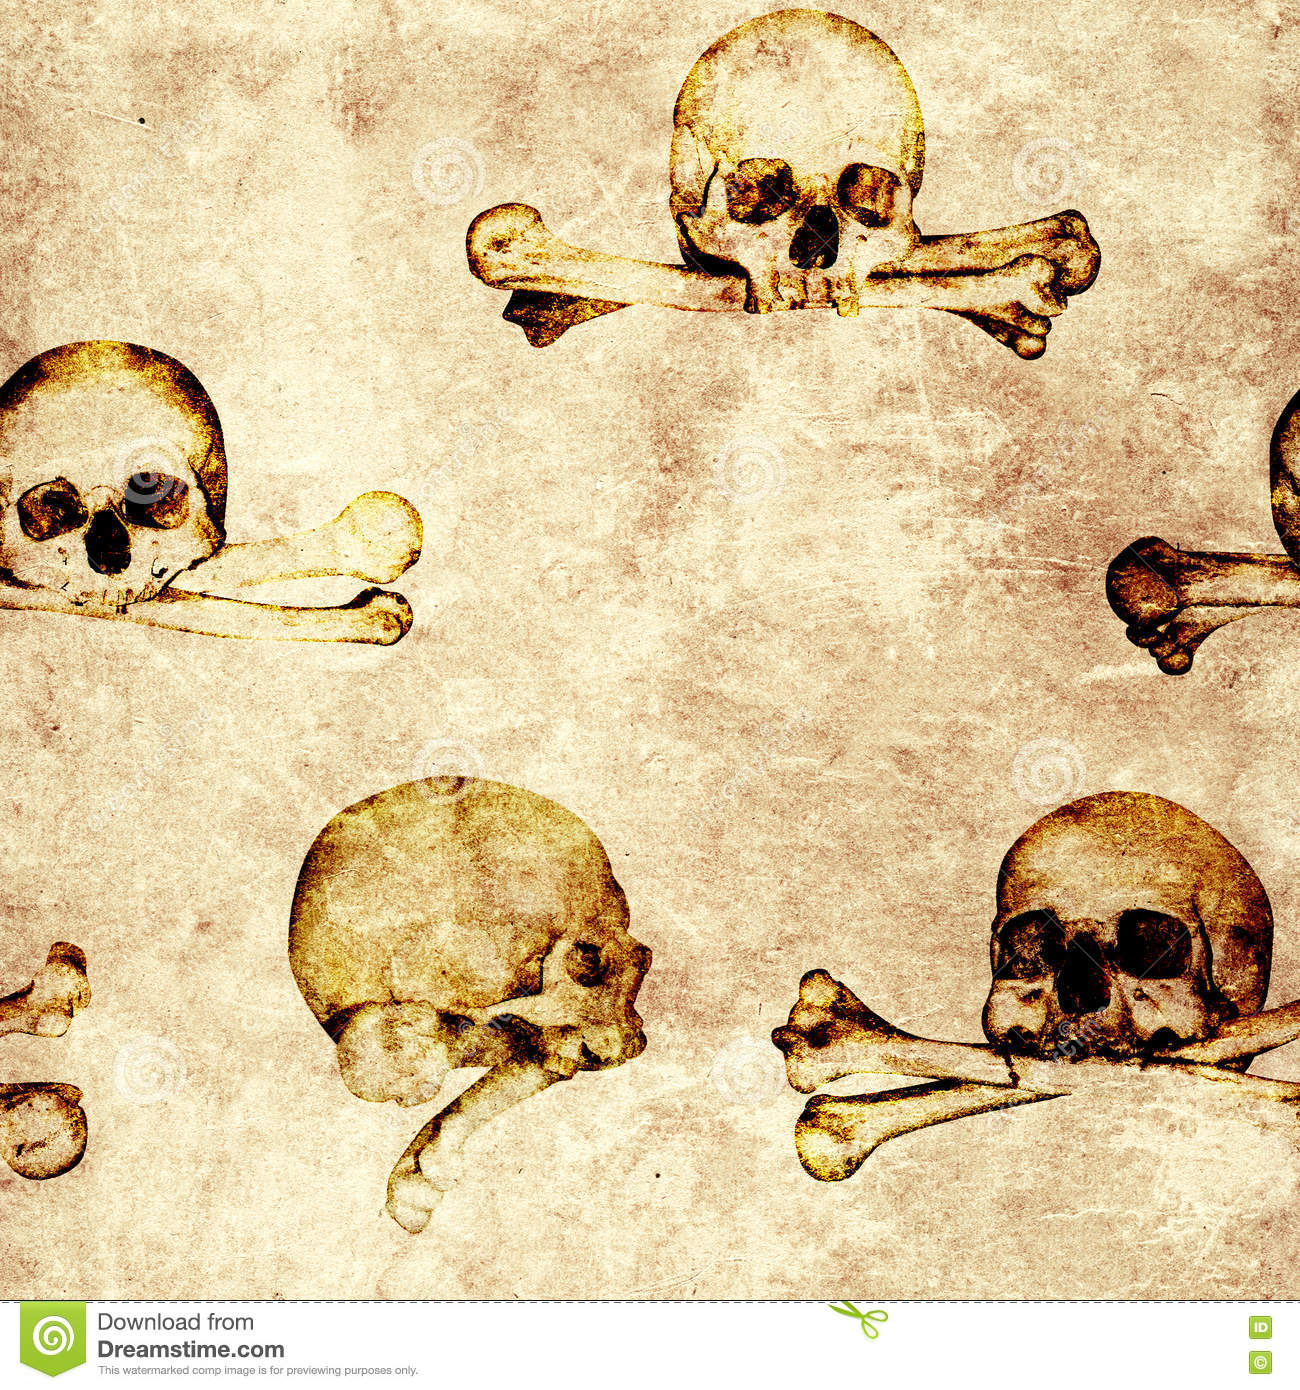 Cool Wallpaper Halloween Grunge - seamless-grunge-halloween-background-human-skulls-old-paper-texture-endless-texture-can-be-used-wallpaper-pattern-79724093  Collection_528212.jpg